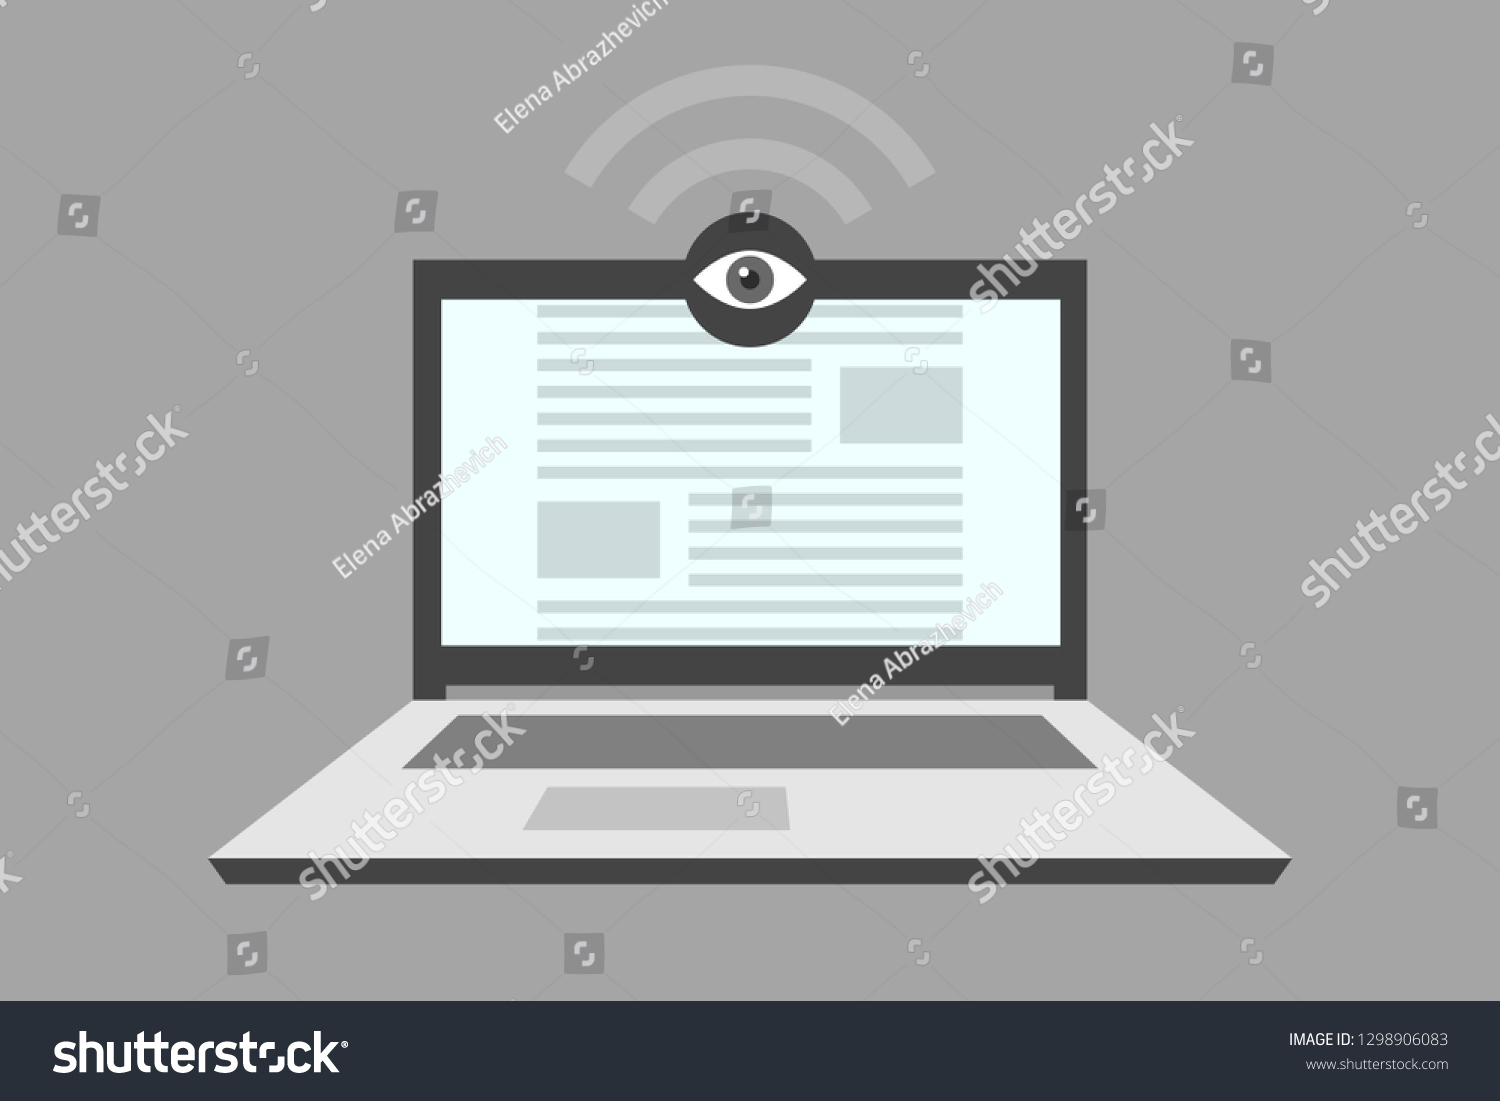 hight resolution of open laptop and webcam with an eye as a symbol of user tracking and